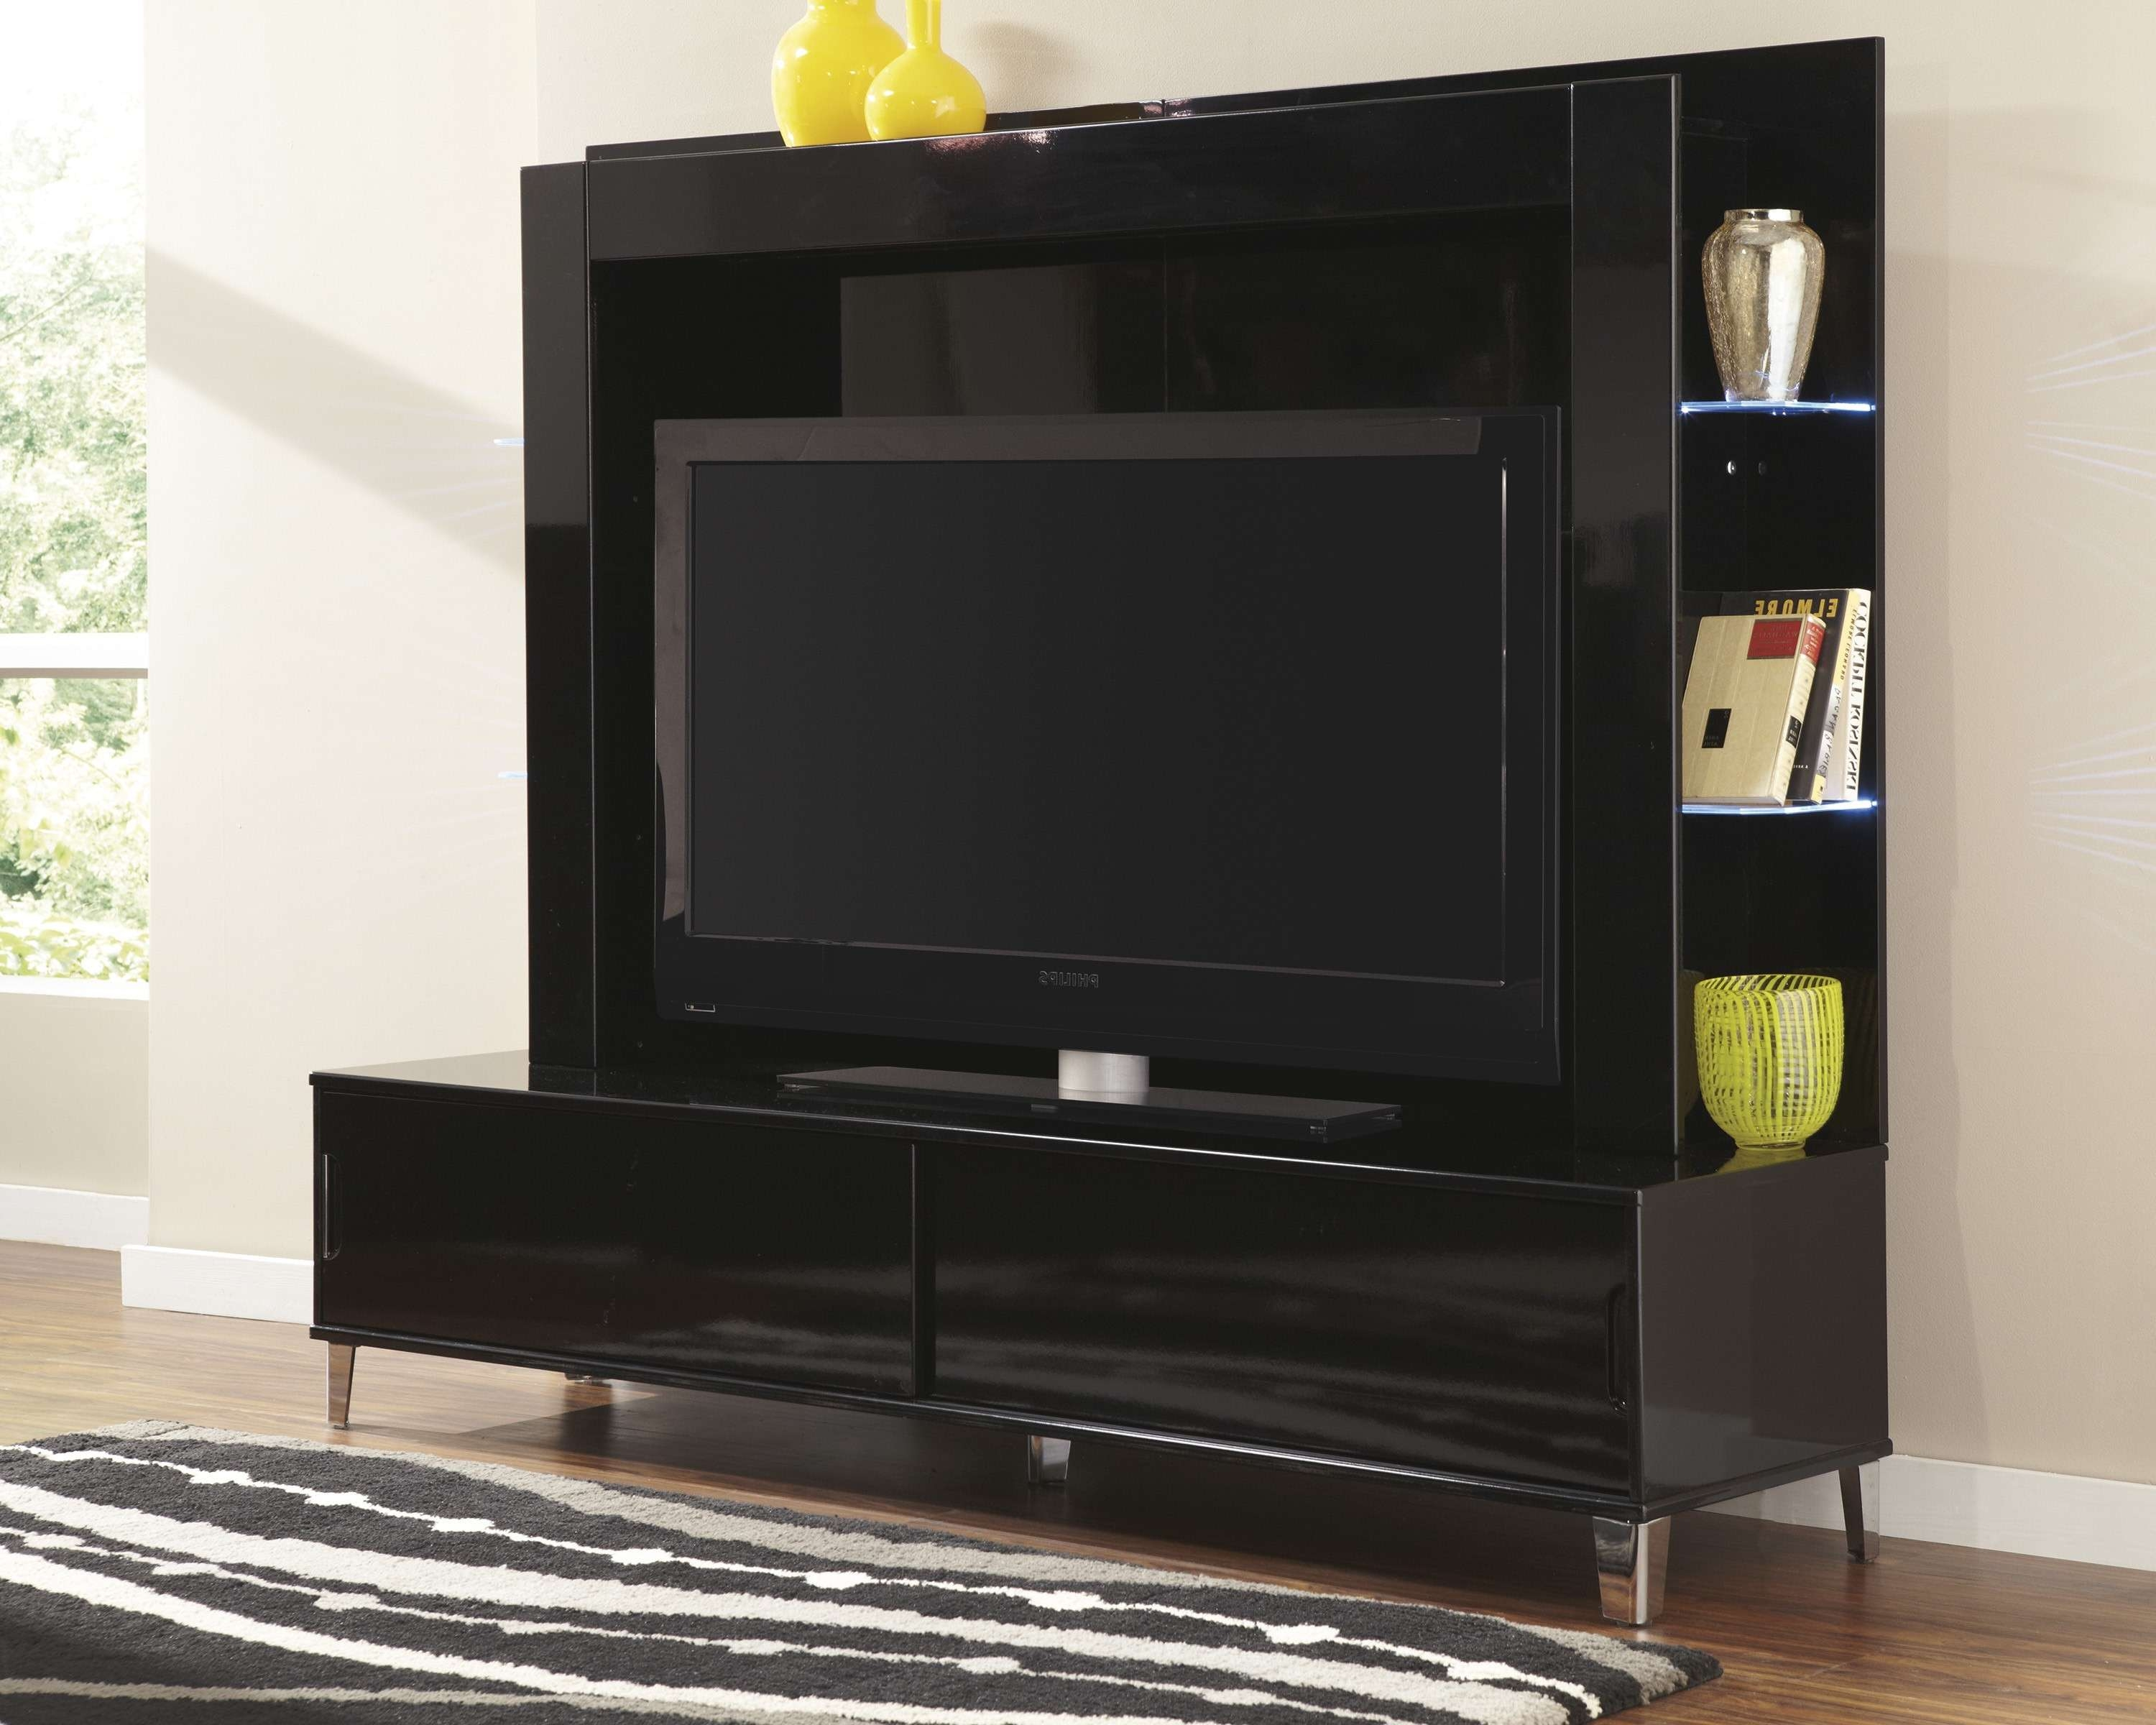 Double Bowl Carpet In Flat Screens Screen Tv Mount Stand Cream Intended For Flat Screen Tv Stands Corner Units (View 9 of 20)